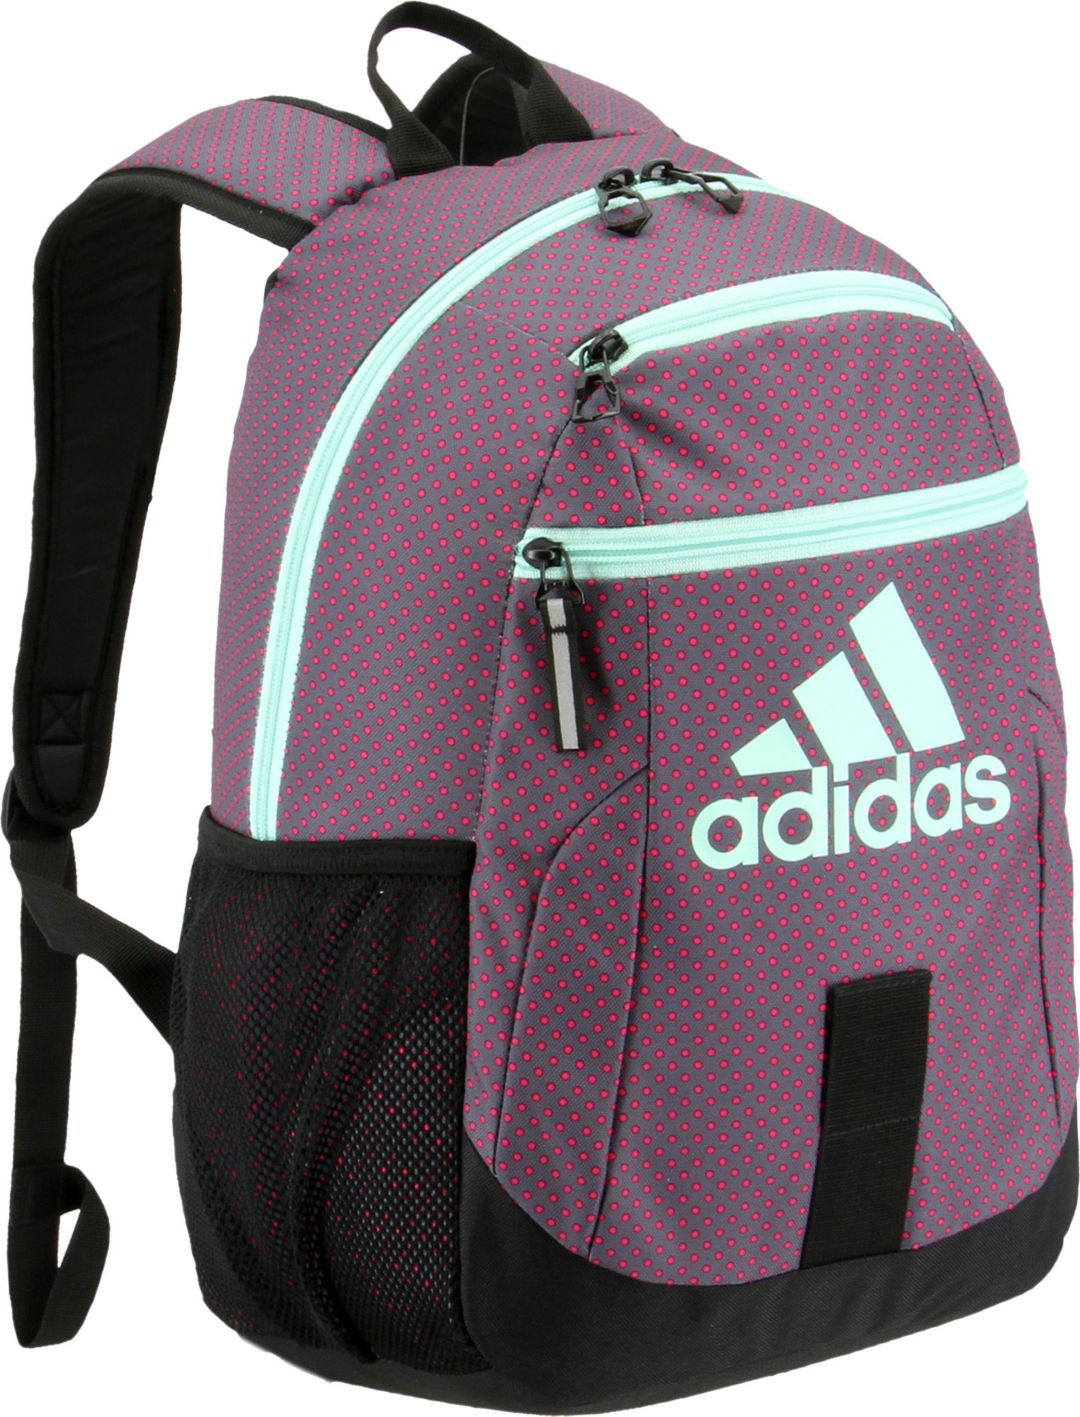 073fd7260 adidas Youth Young Creator Backpack   Best Price Guarantee at DICK'S